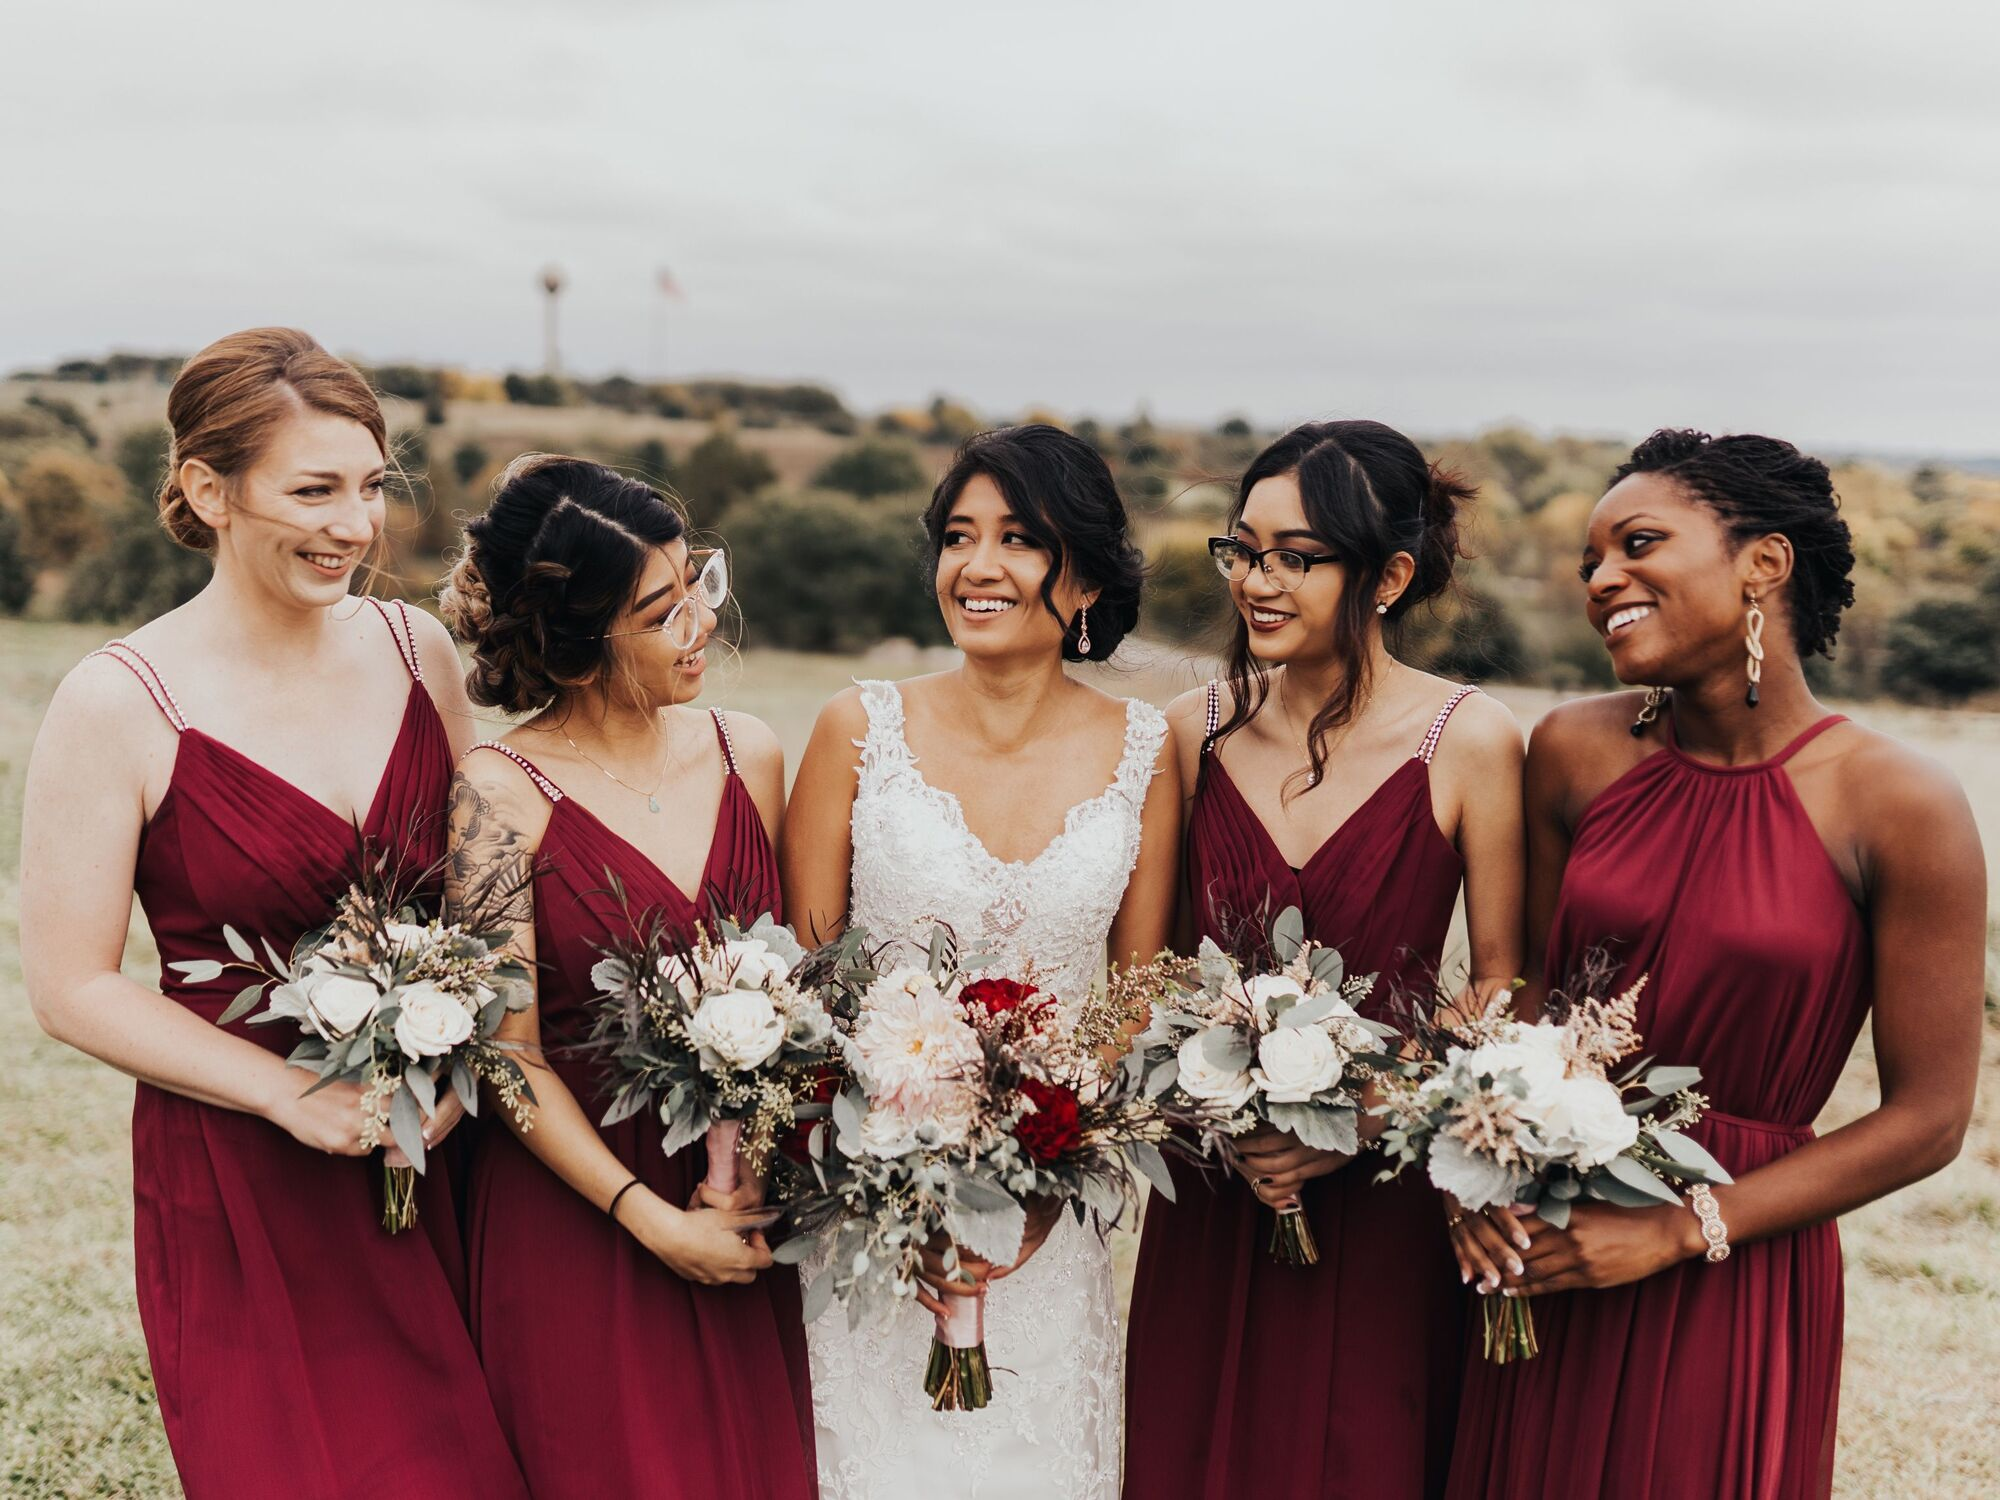 Bride in her ivory wedding dress with 4 bridesmaids in burgundy red.